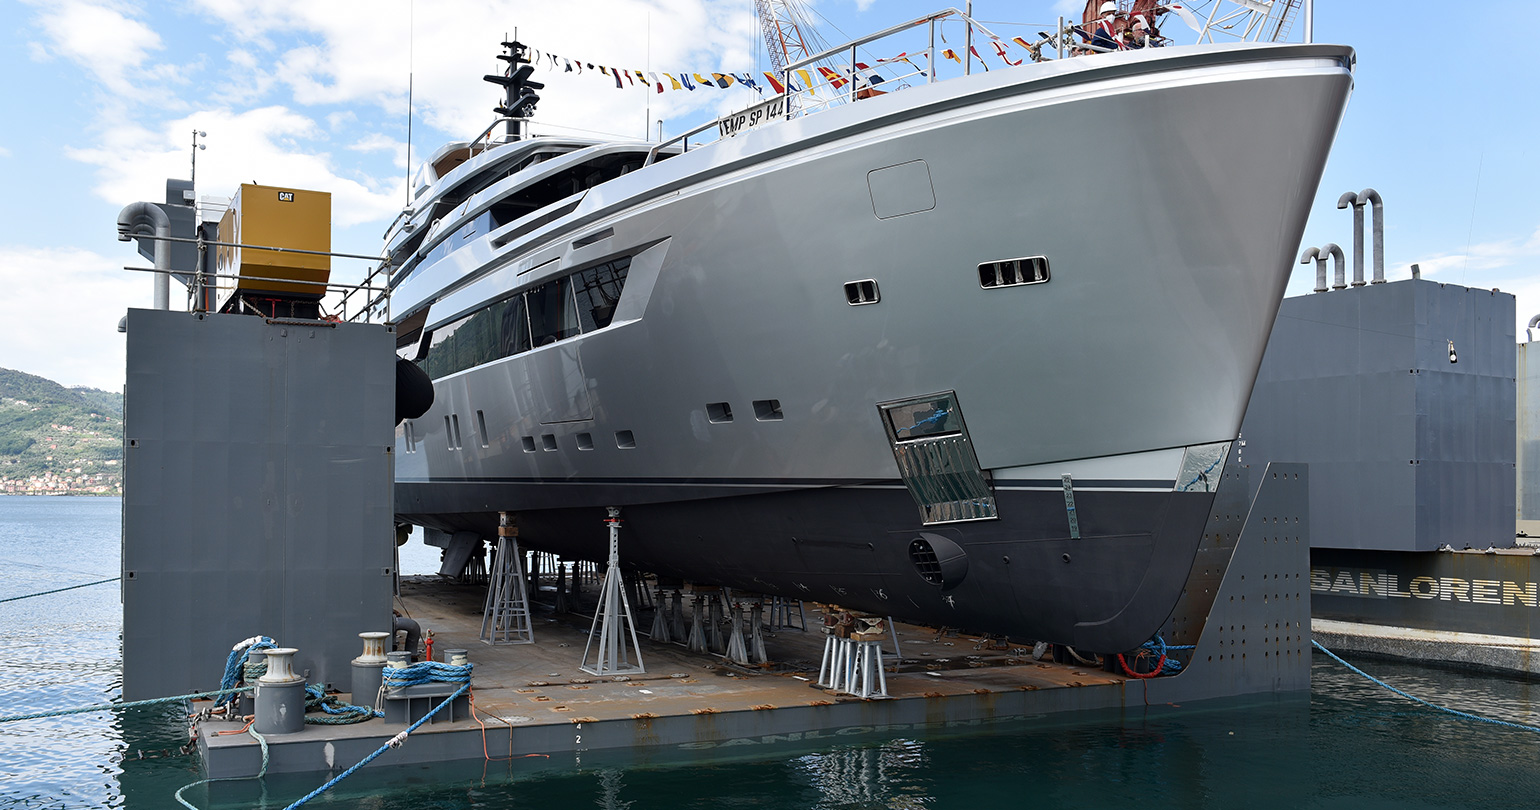 Sanlorenzo Alloy 44 already launched